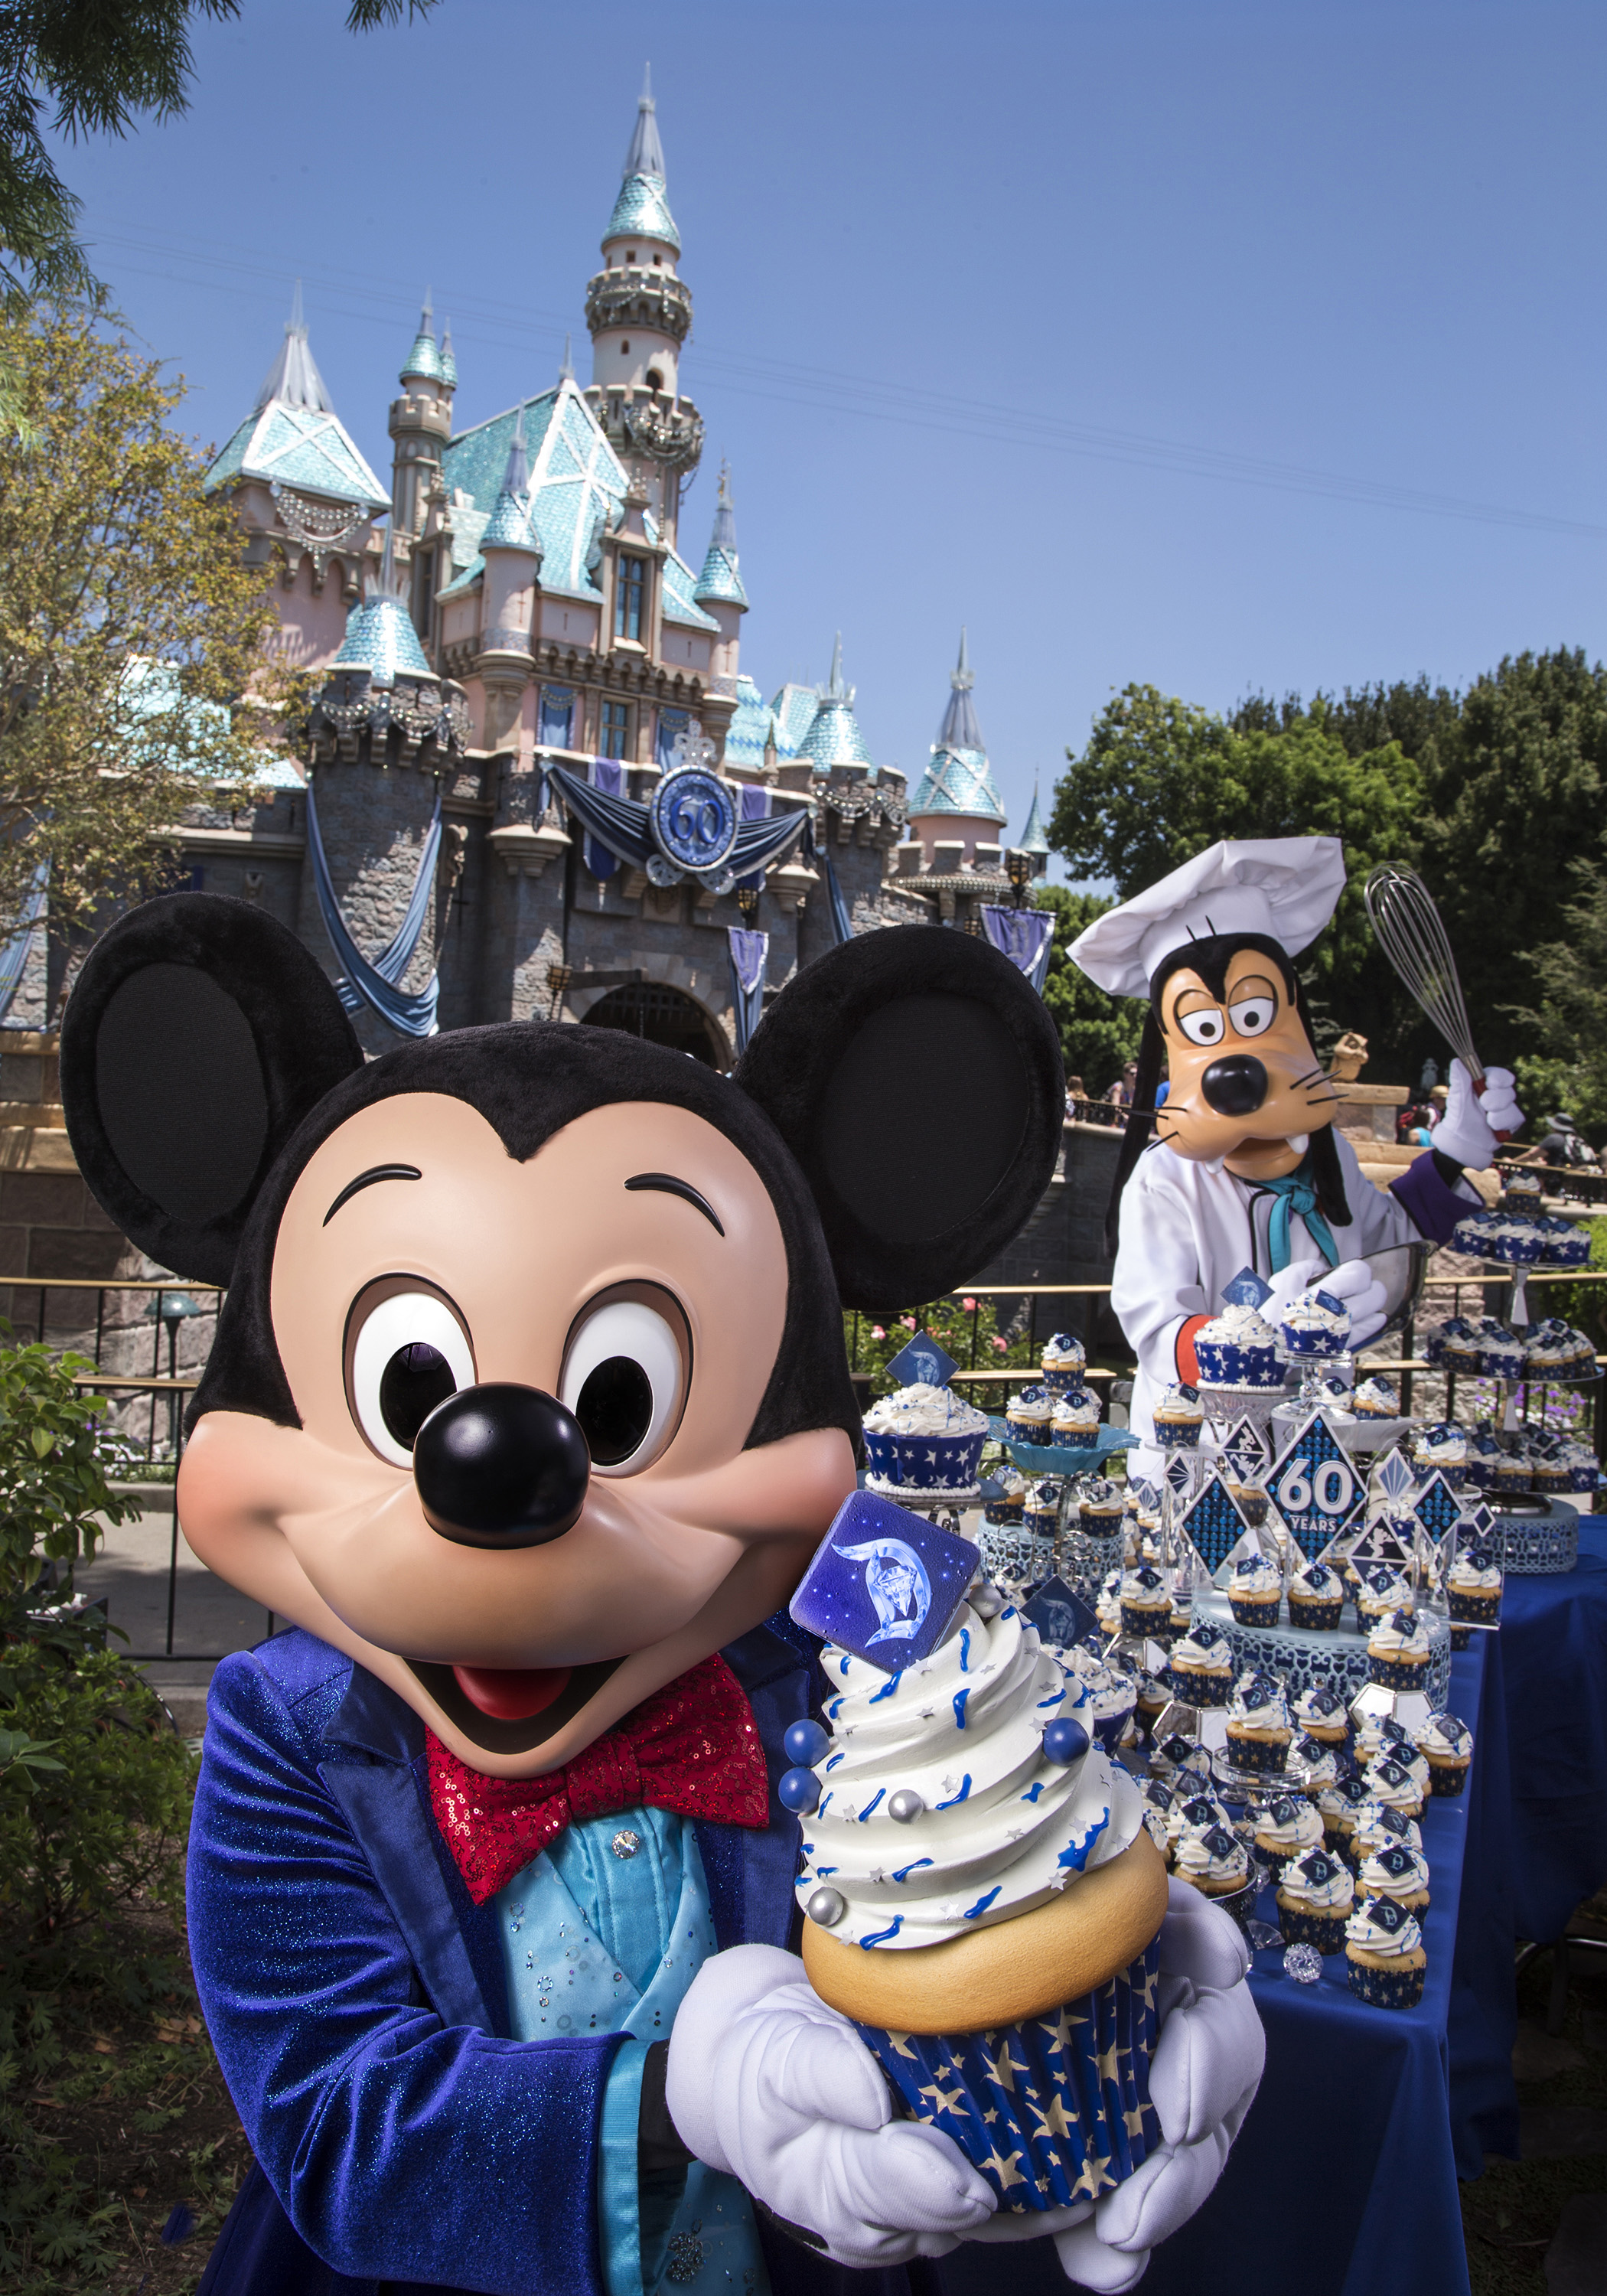 Mickey Mouse And Goofy Prepare For Disneyland 60th Anniversary